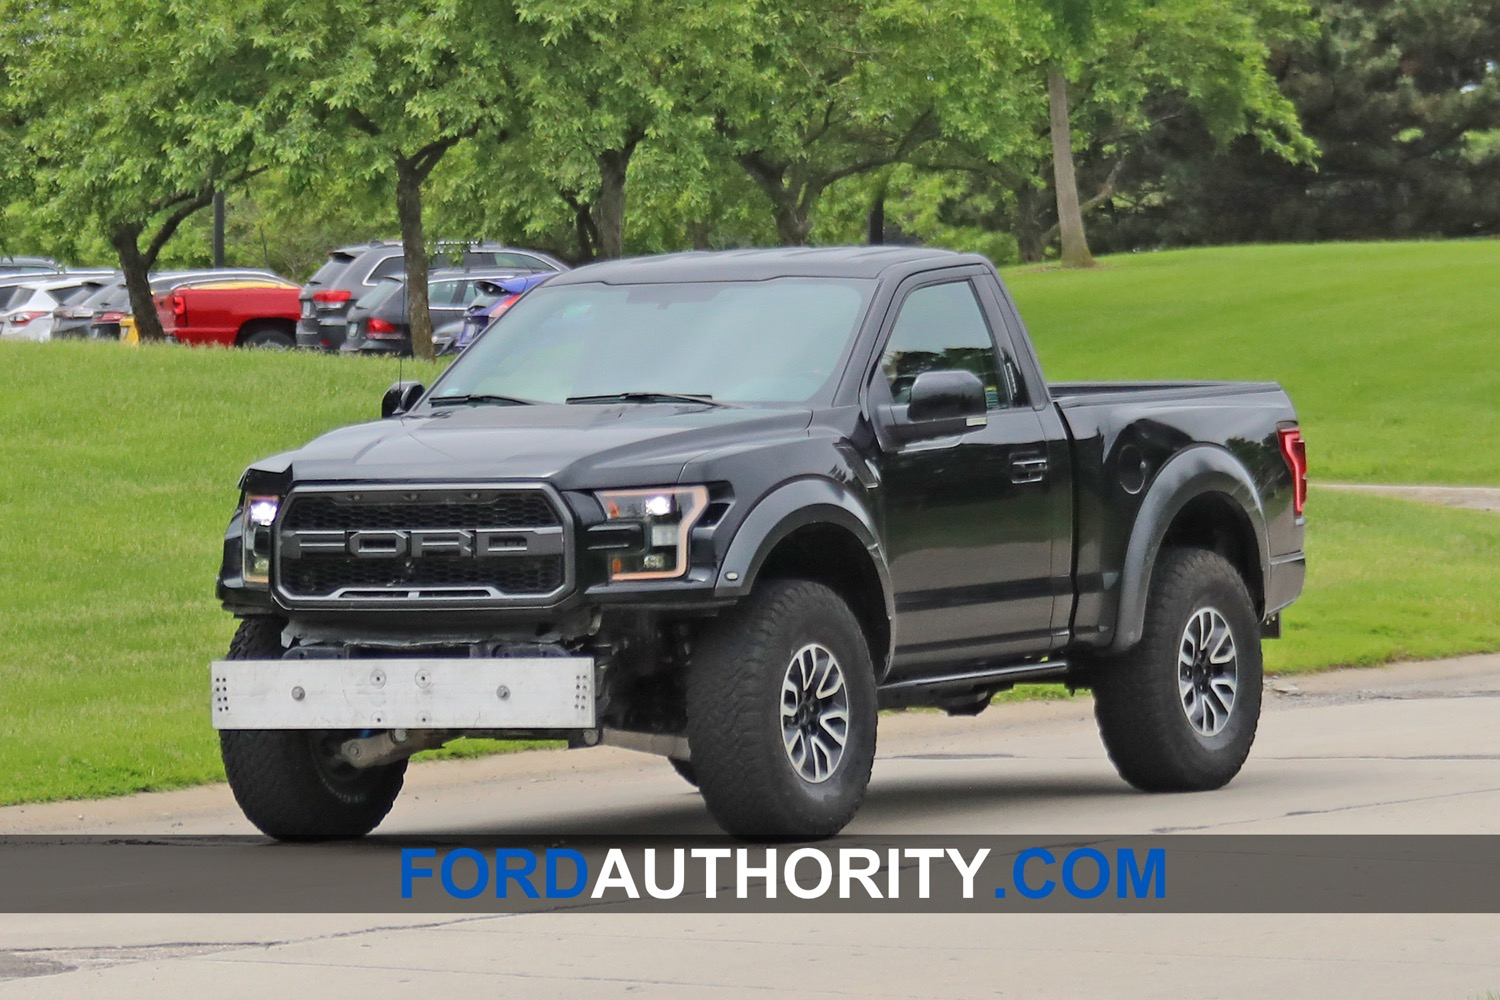 Ford Considering Tremor Package For F-150 Pickup